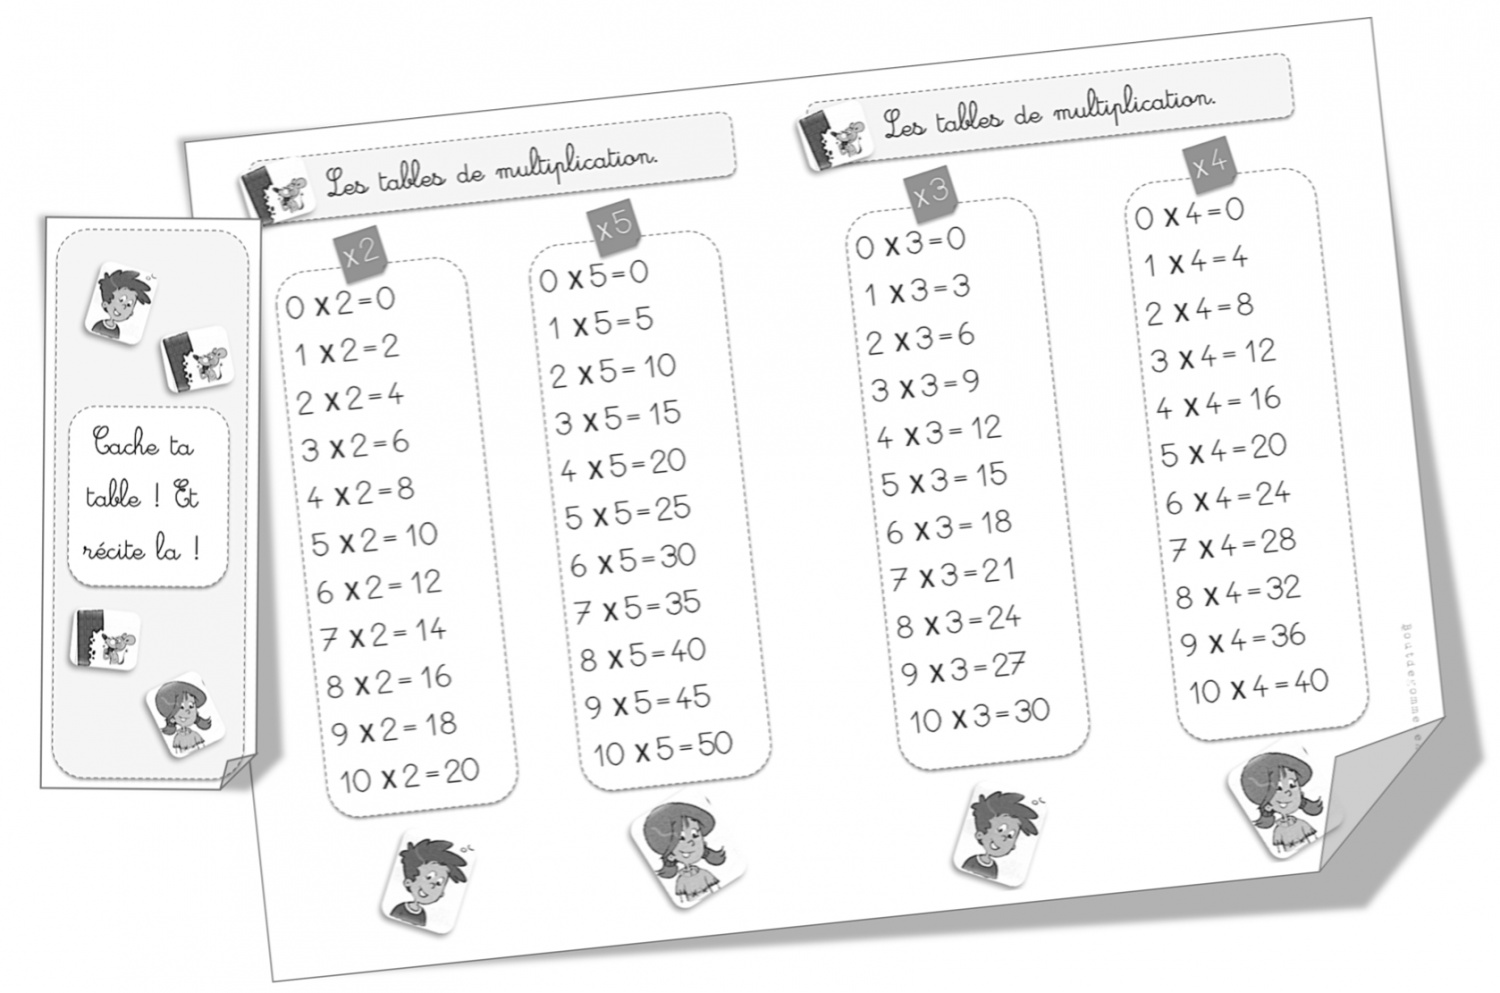 Jeu Table De Multiplication Ce1 Tables De Multiplication Ce1 Bout De Gomme